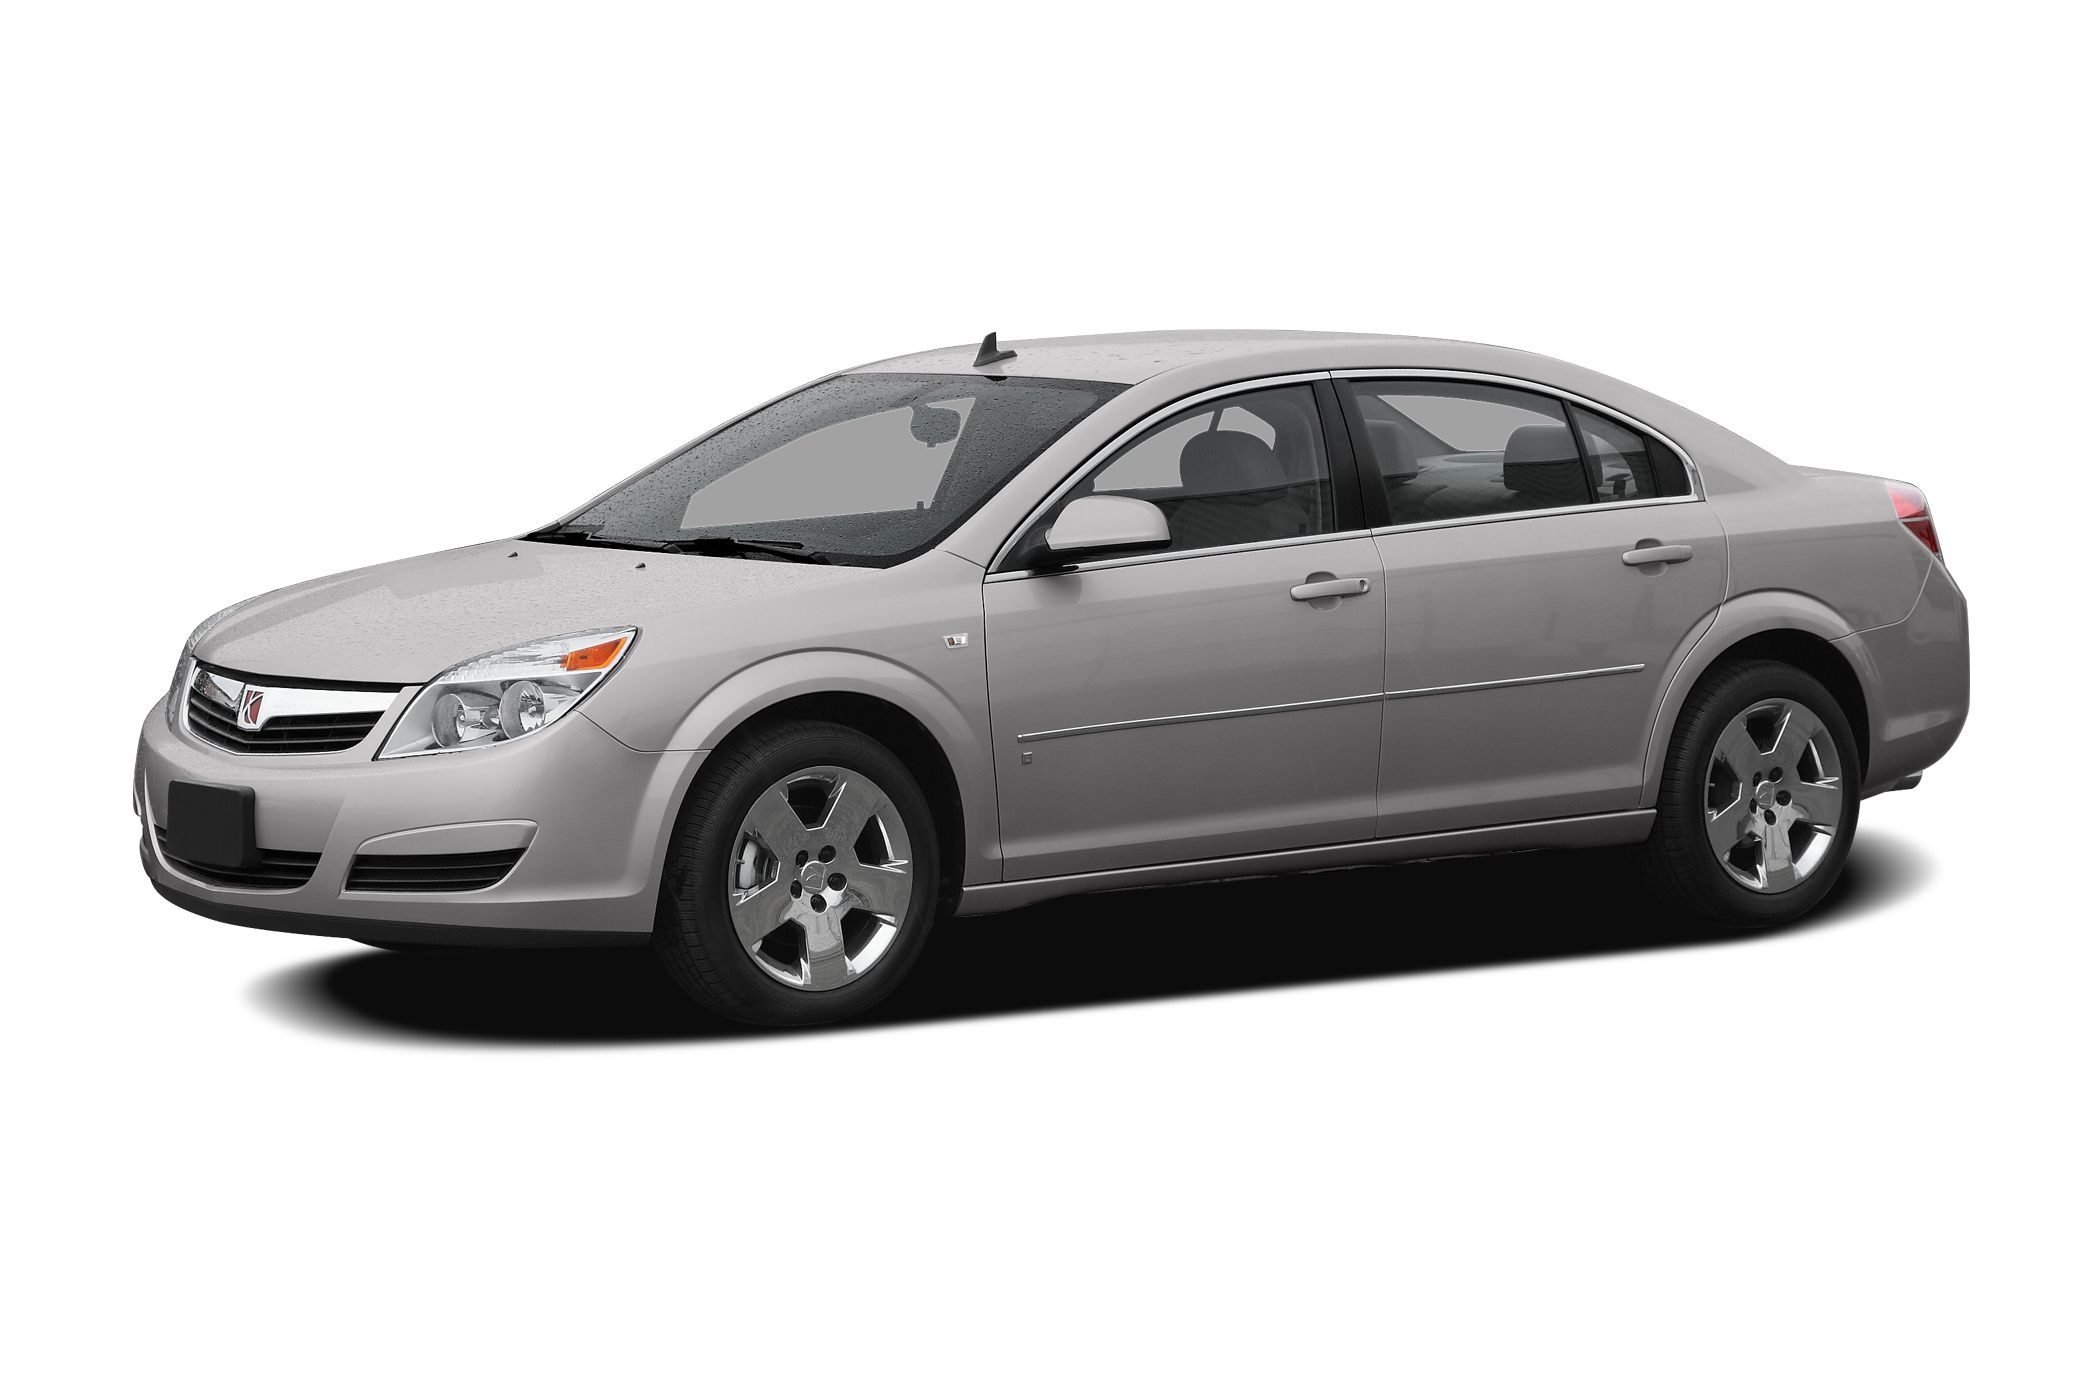 2007 Saturn Aura XE Sedan for sale in Burbank for $8,490 with 56,433 miles.